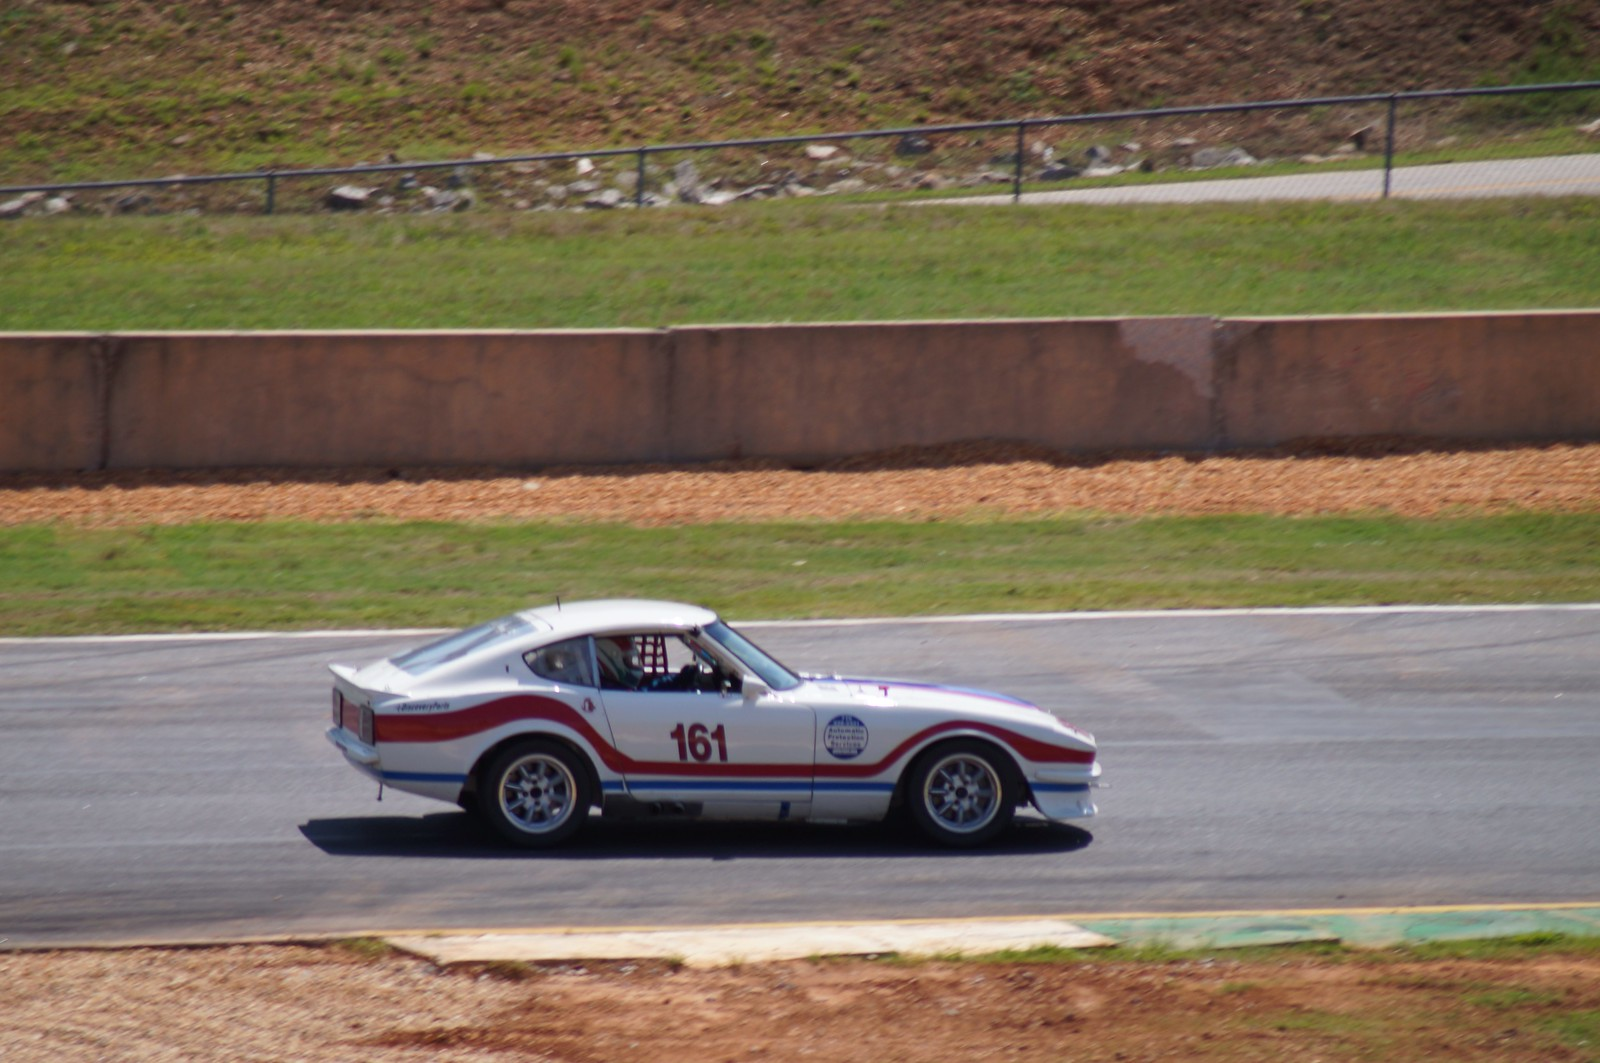 Hotlanta Historics July 2016 (335 Photos)